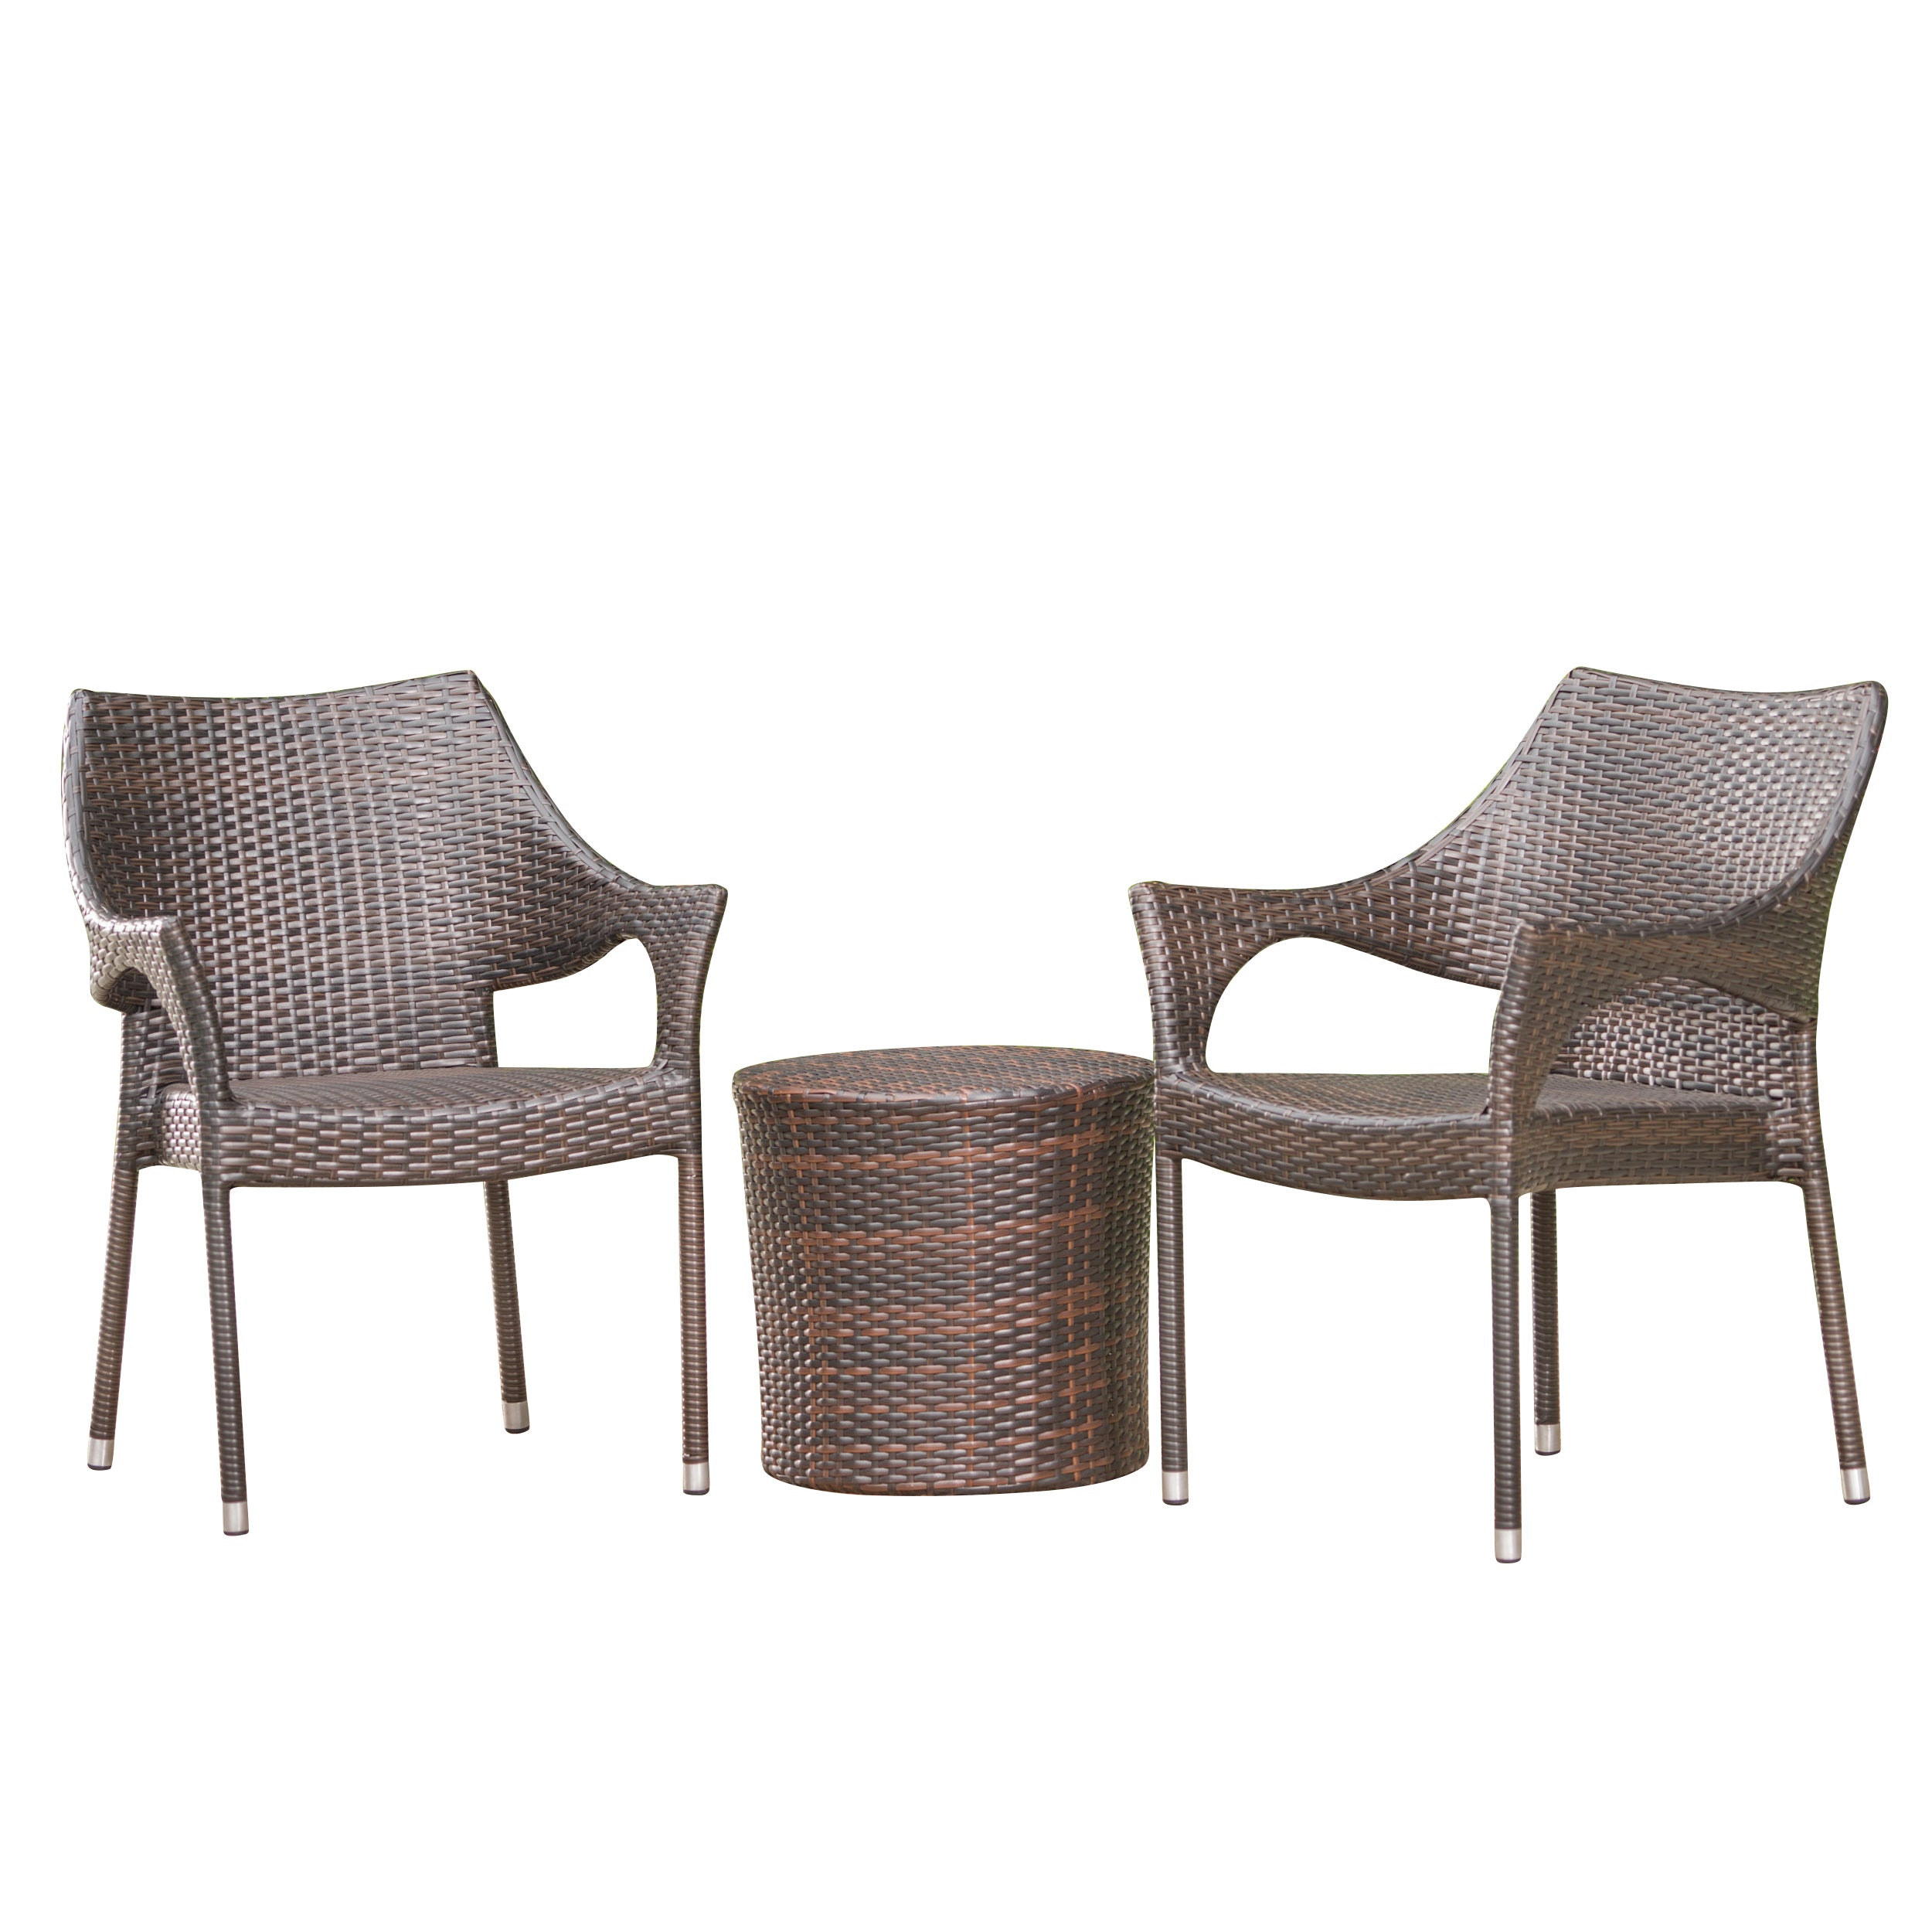 Alfheimr Outdoor 3 Piece Multi brown Wicker Stacking Chair Chat Set Framed Hour Glass Table